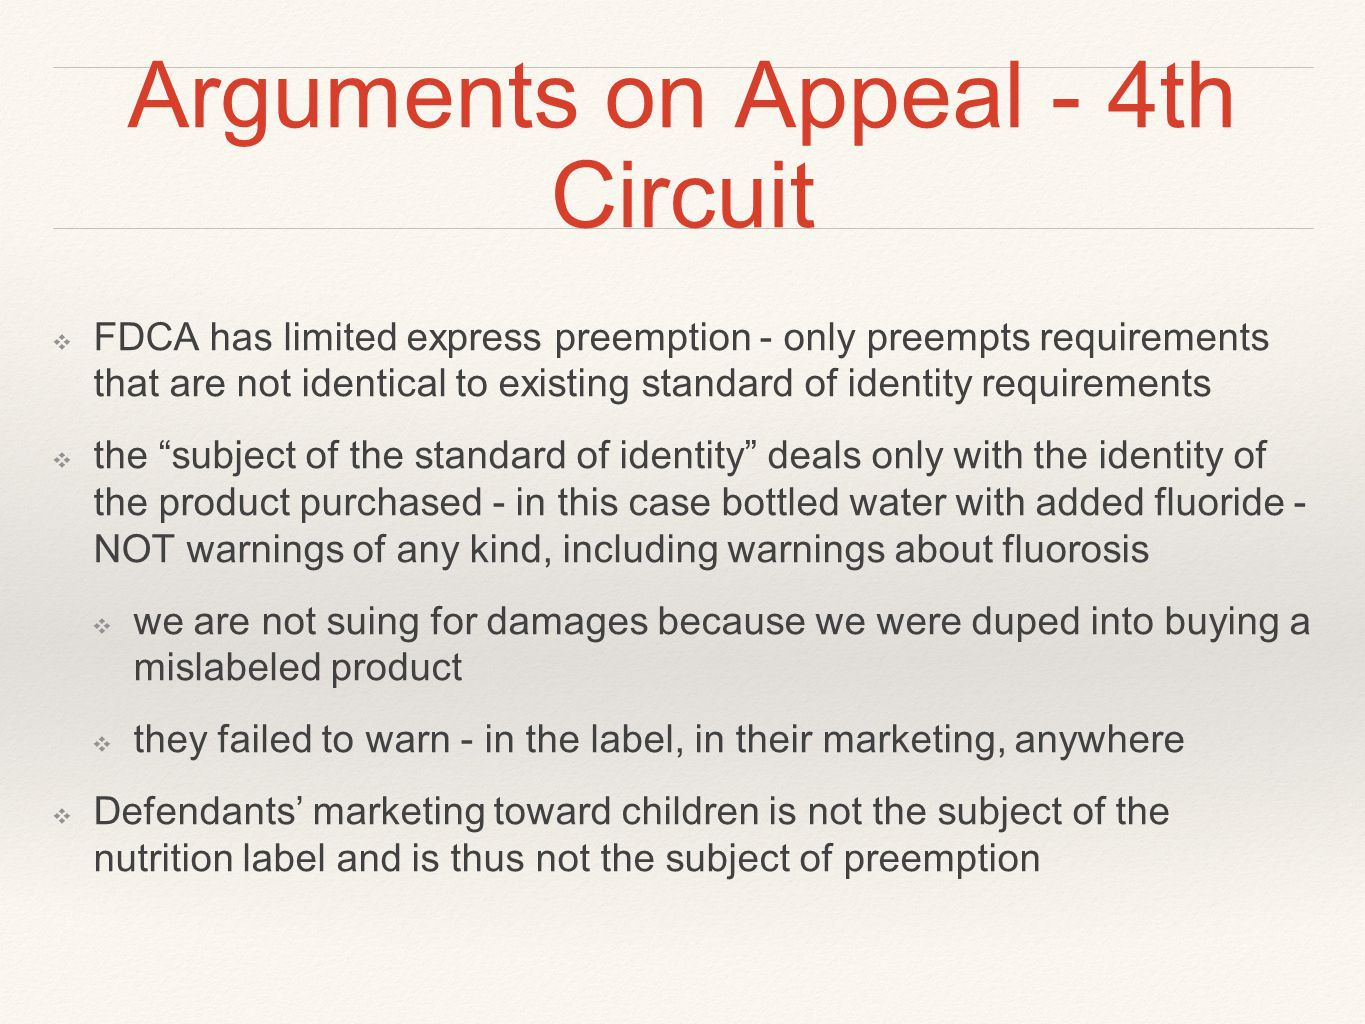 Arguments on Appeal - 4th Circuit